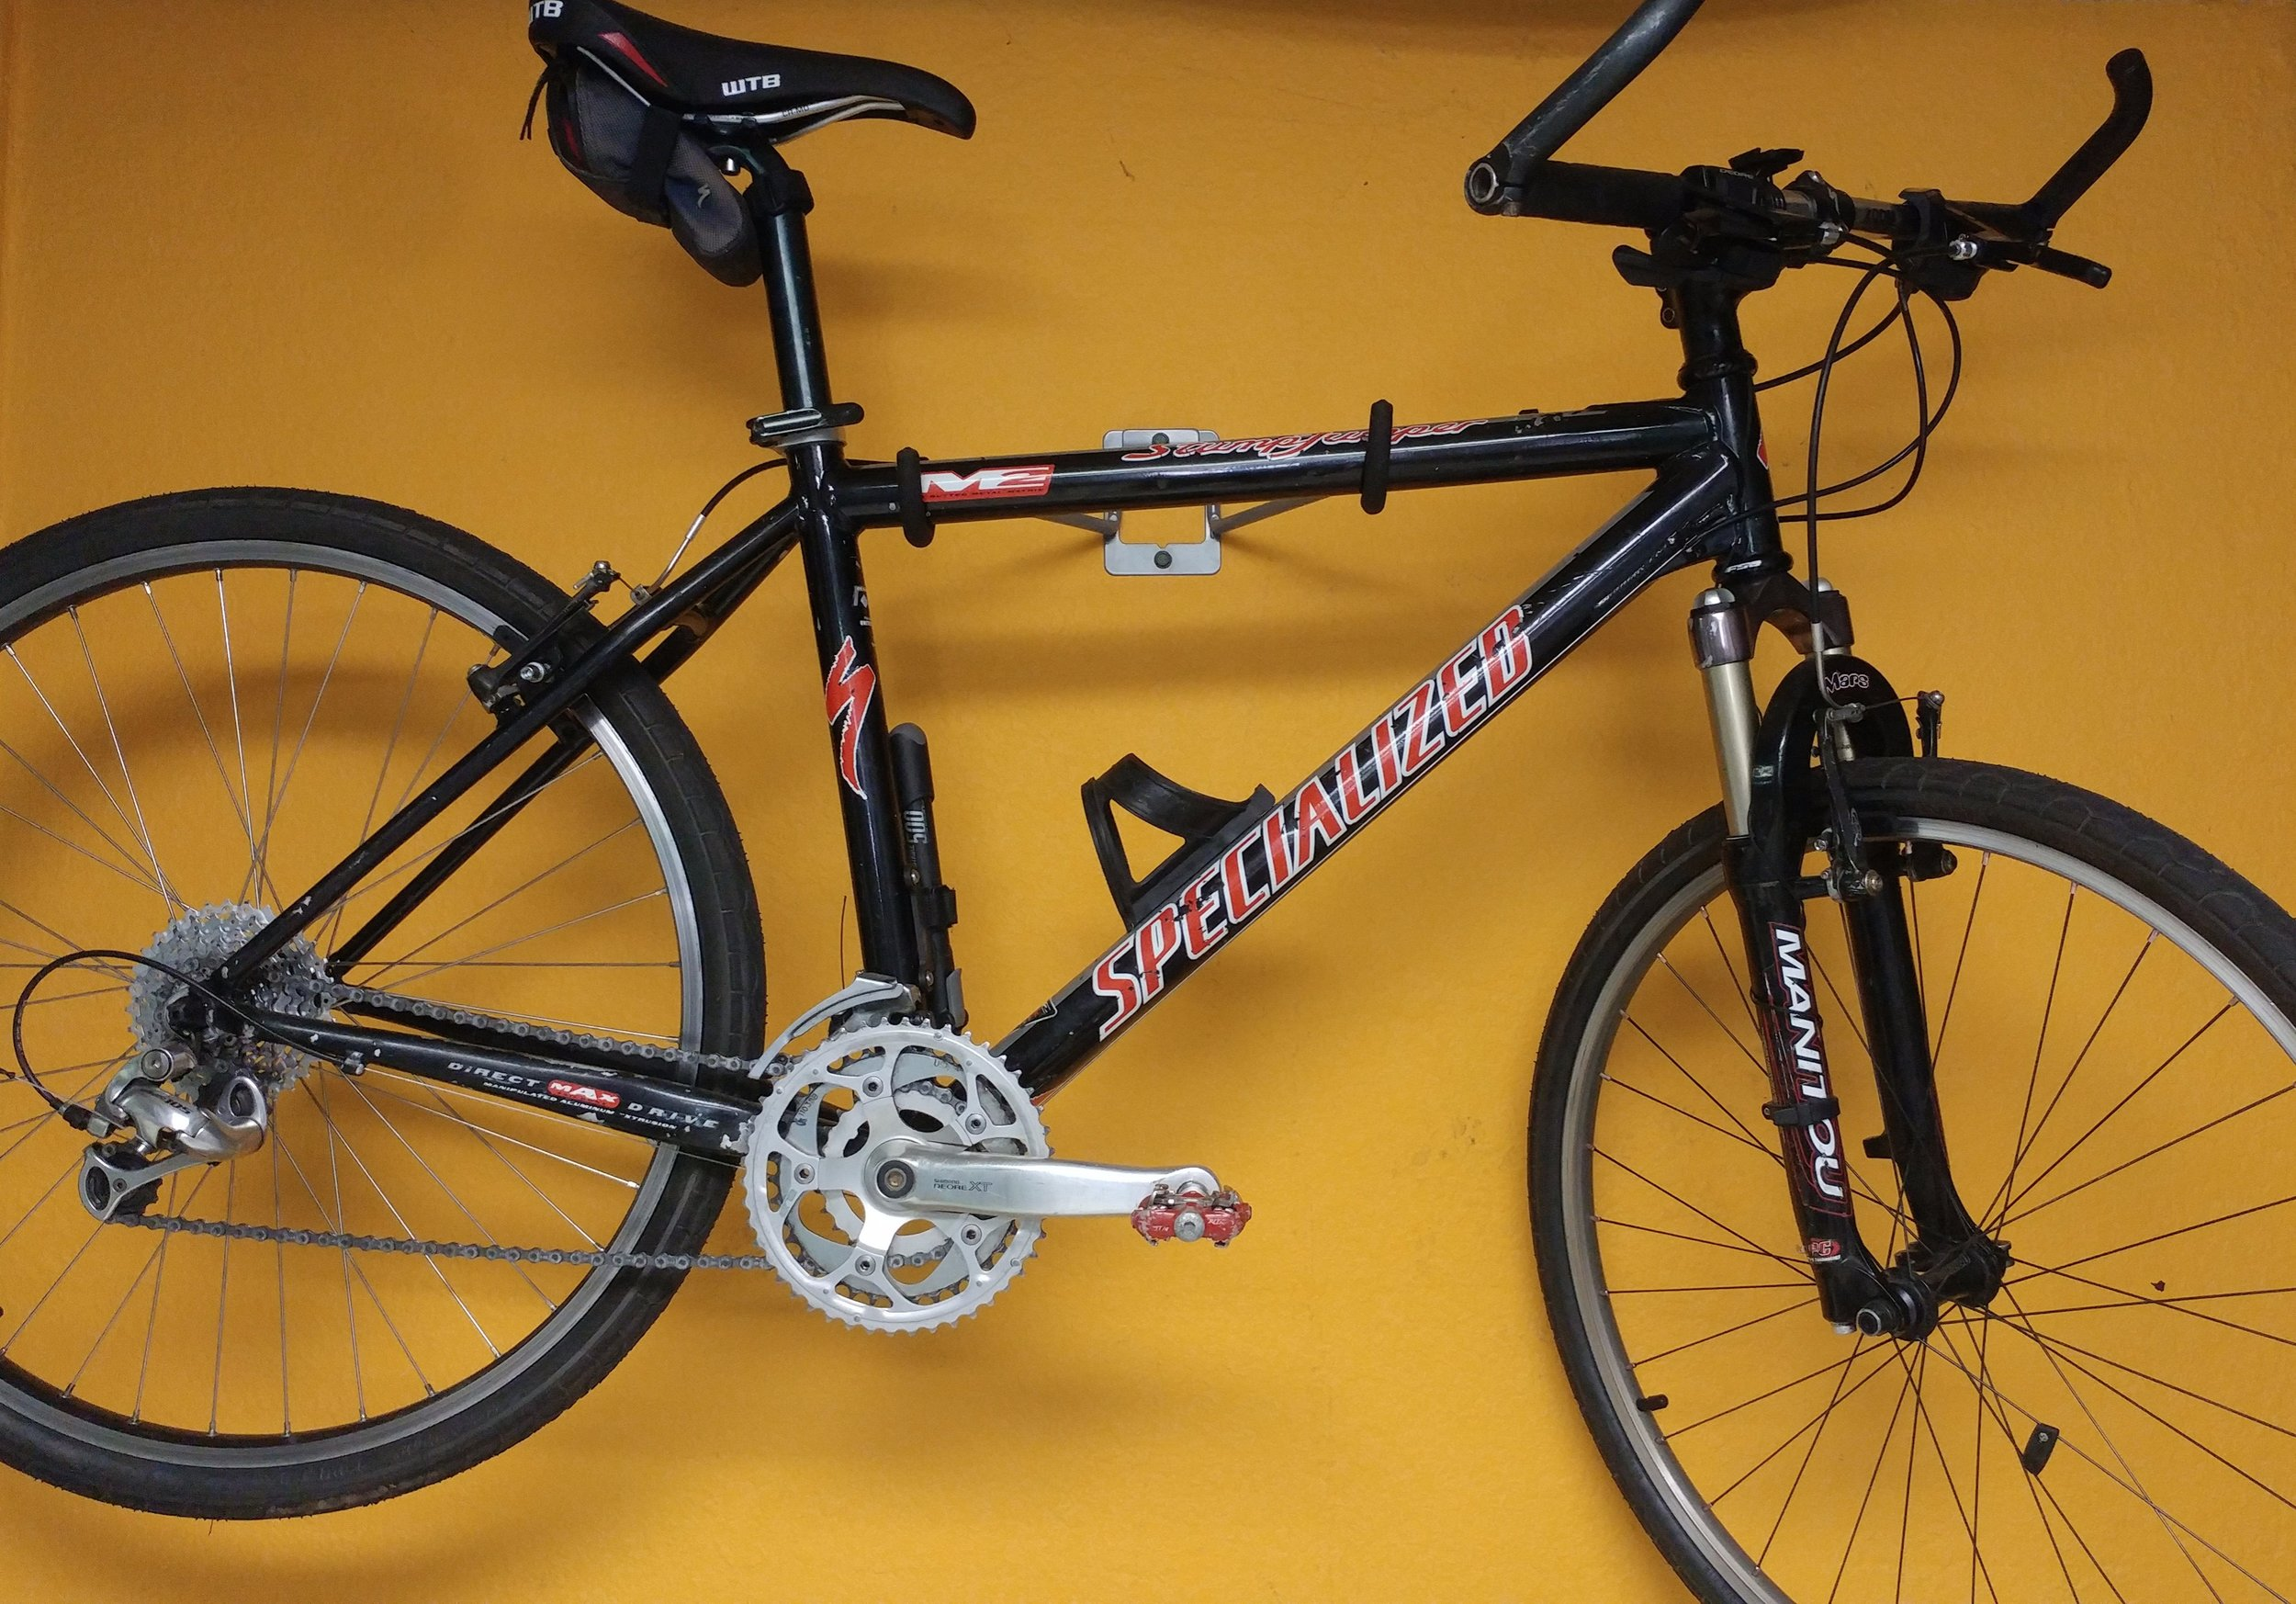 Want to buy a bike? - Click on the Specialized (the bike to the left) to tell us what you're looking for!All bikes in our inventory are donated/used, and refurbished to generate revenue for our mission programs. We can work with most budgets to get you rolling. Ask us about safety and maintenance classes too!